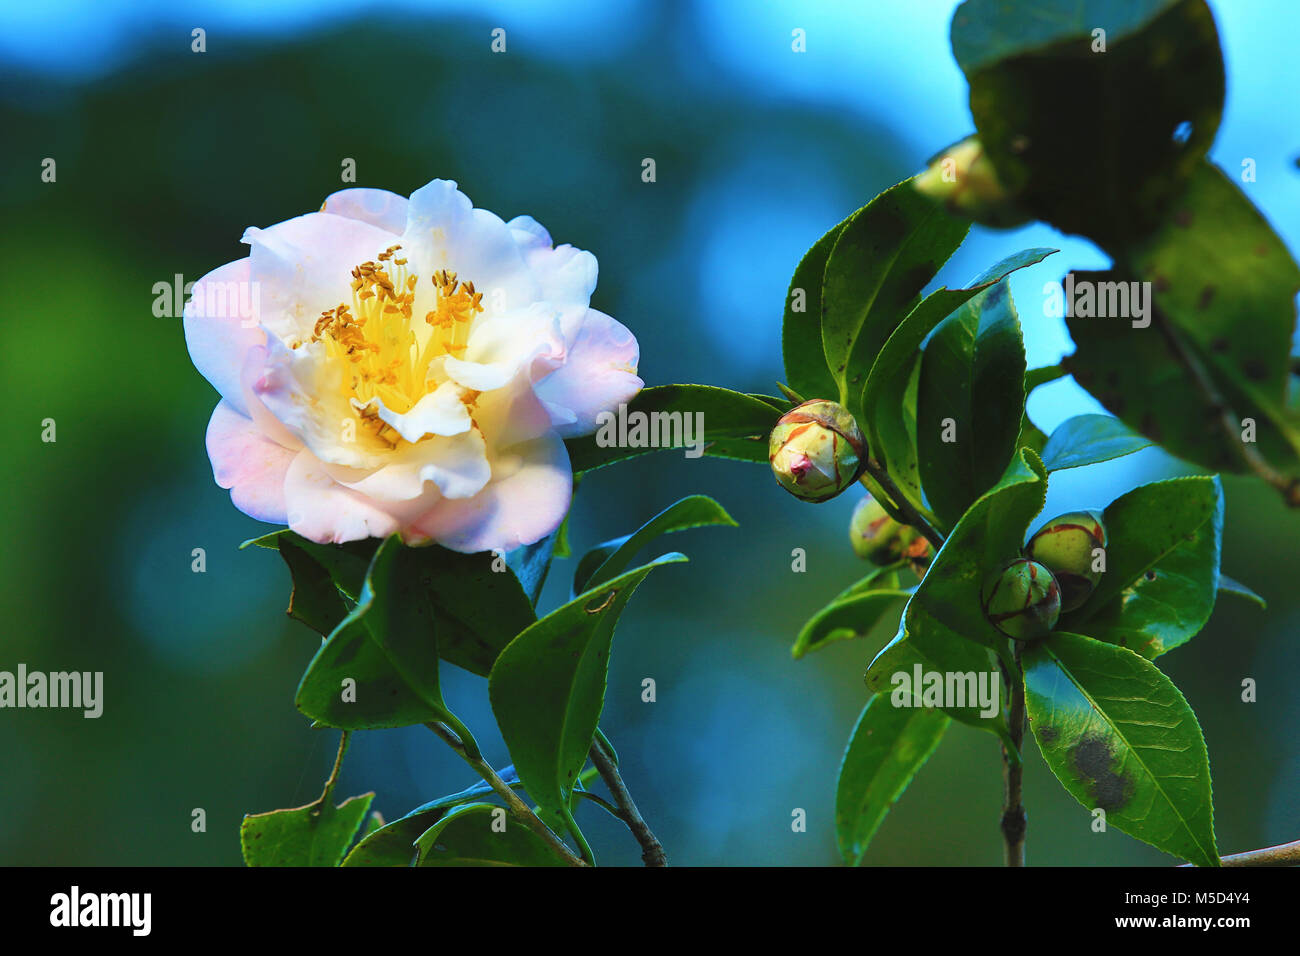 White with pink camellia flowersbeautiful flowers with raindrop white with pink camellia flowersbeautiful flowers with raindrop blooming in the garden izmirmasajfo